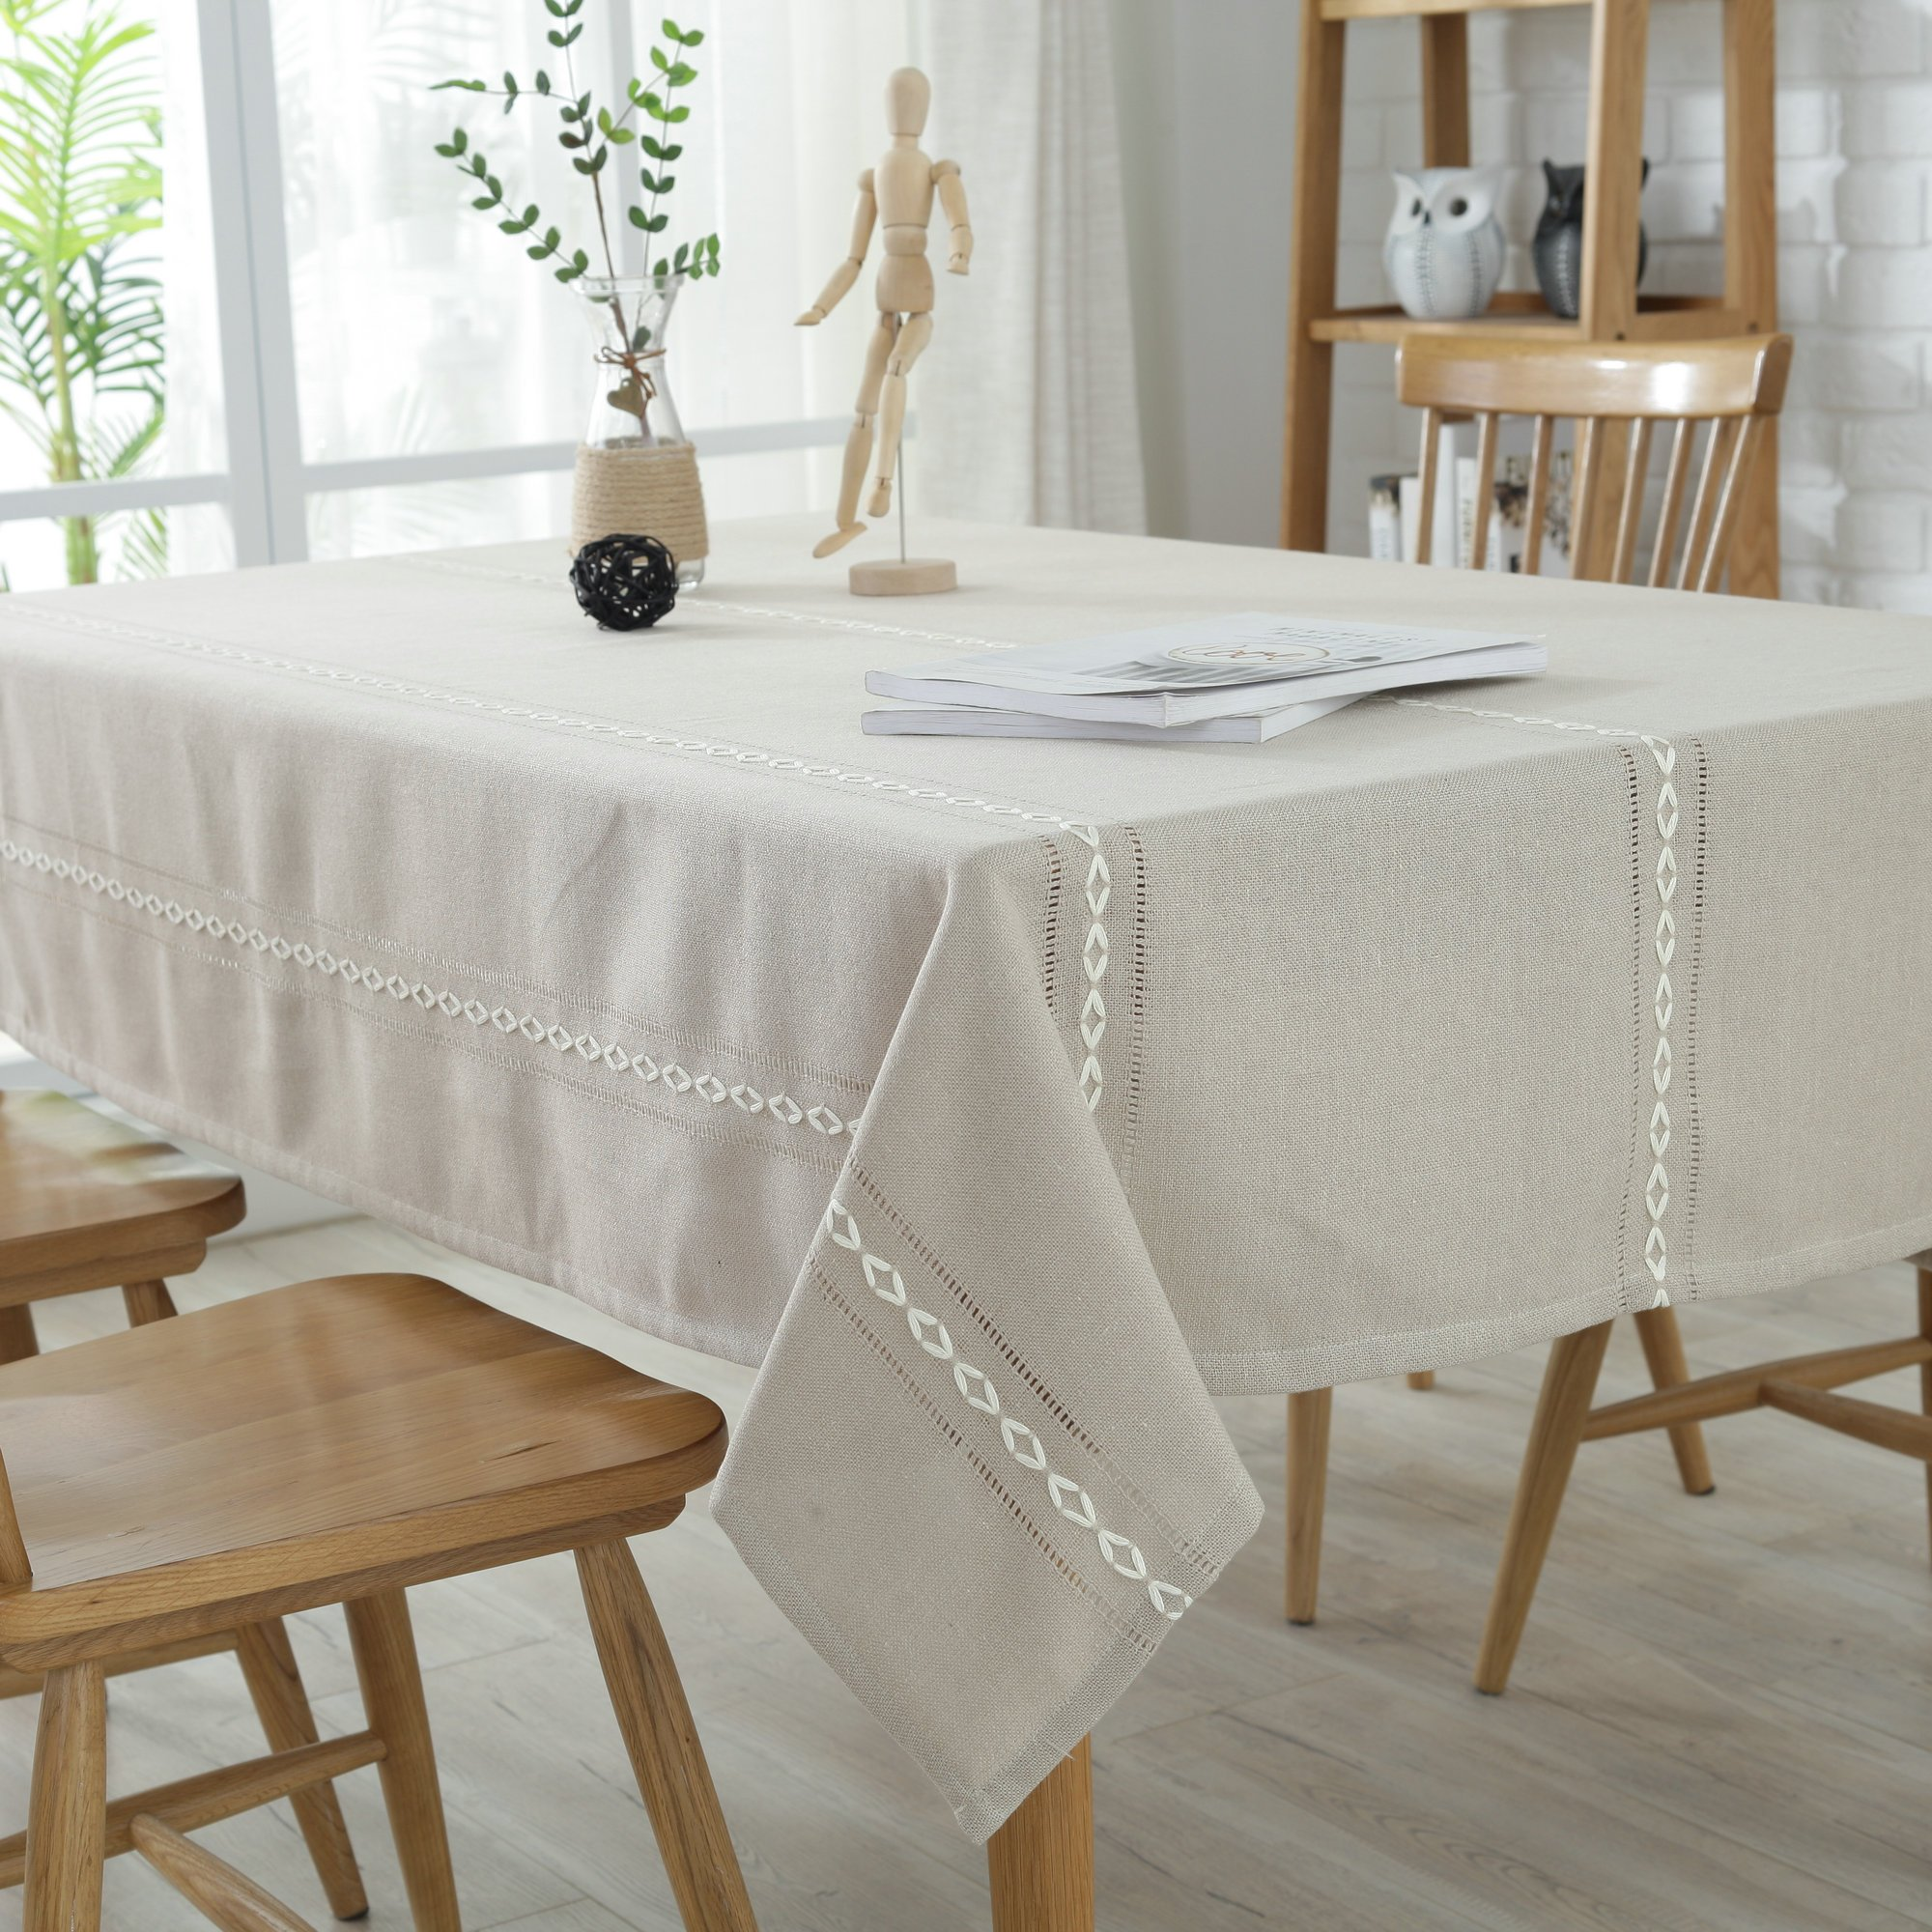 Enova Home Heavyweight Elegant Cotton Washable Tablecloths for Rectangle Tables, Table Cover for Kitchen Dinning Tabletop Decoration (54 x 72 Inch, Cream)